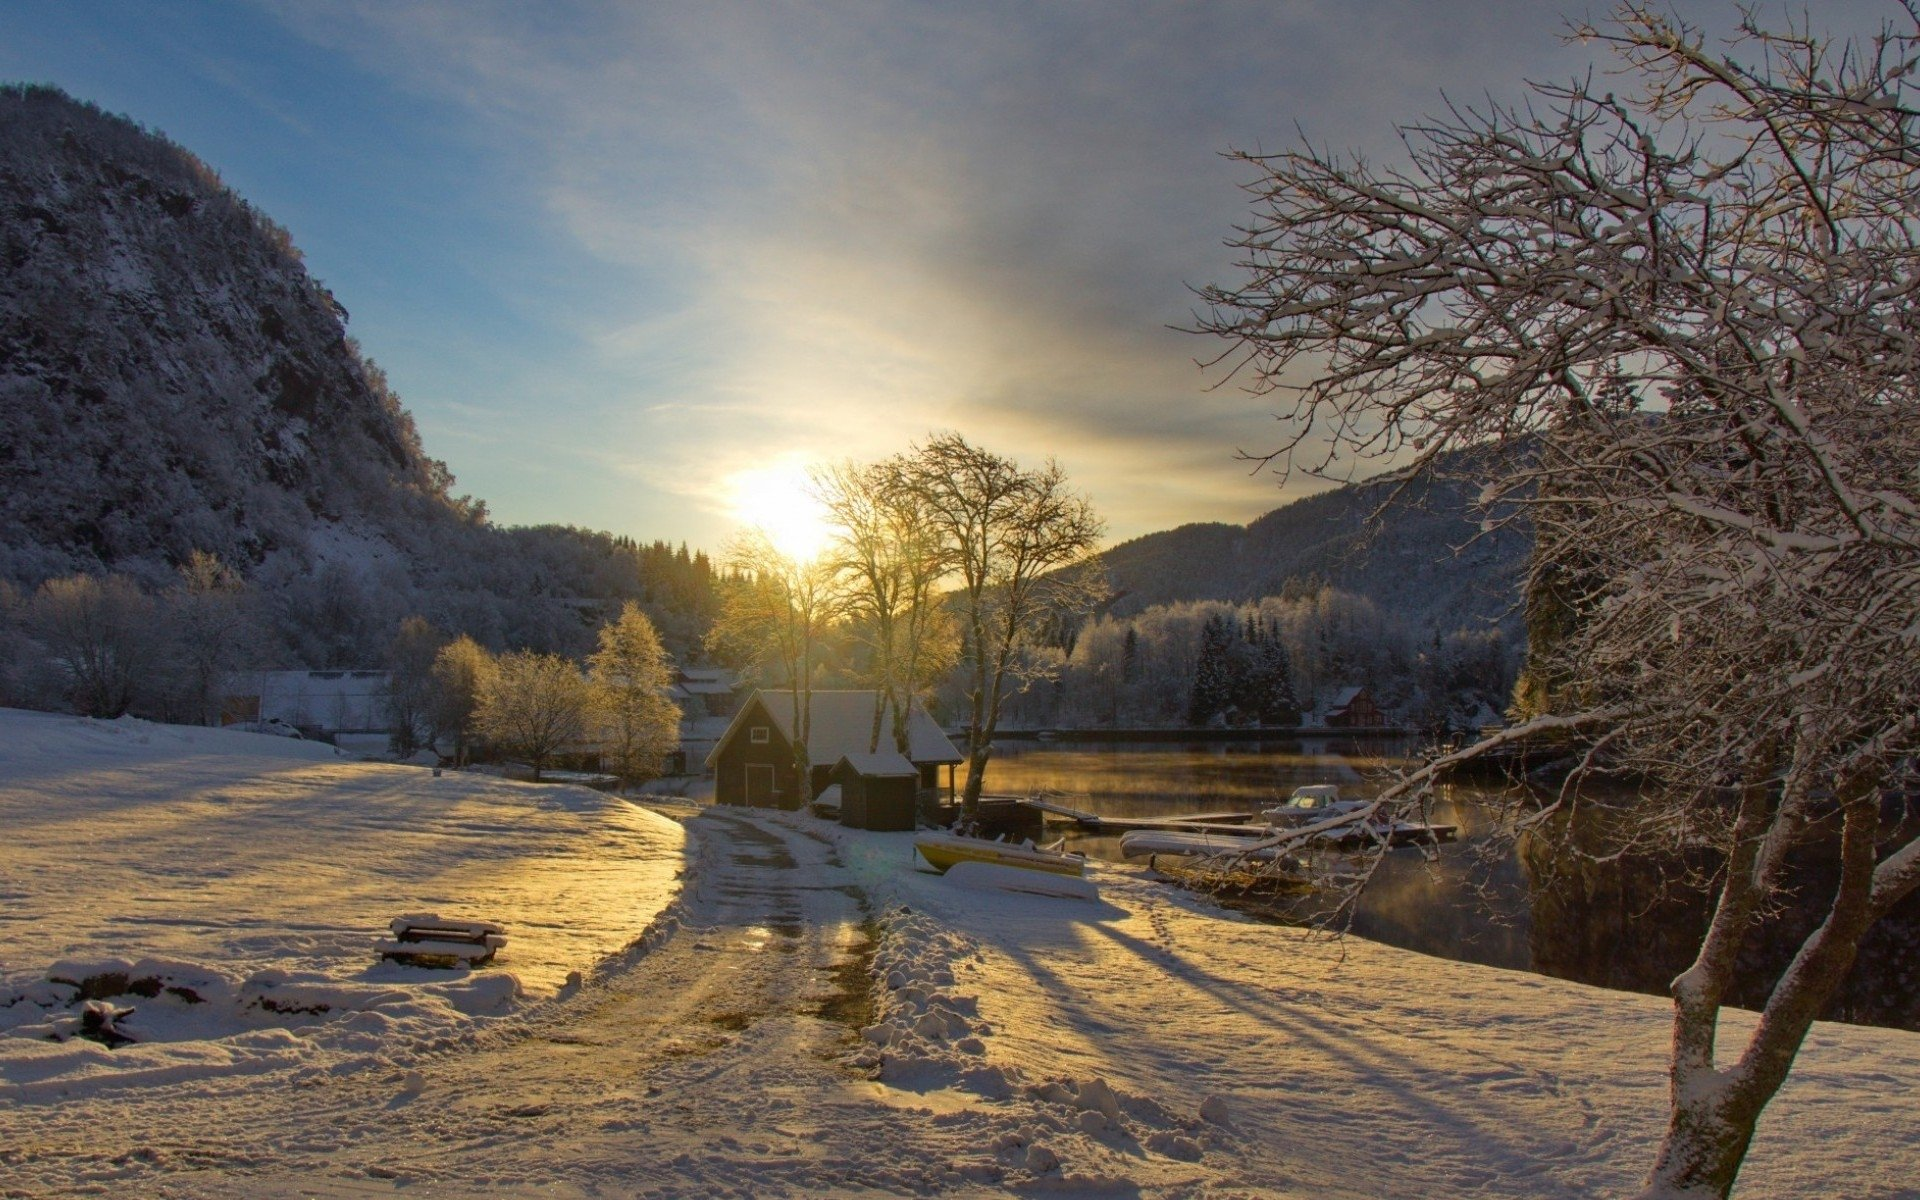 Haus am see wallpaper  Winter Full HD Wallpaper and Hintergrund | 1920x1200 | ID:545527